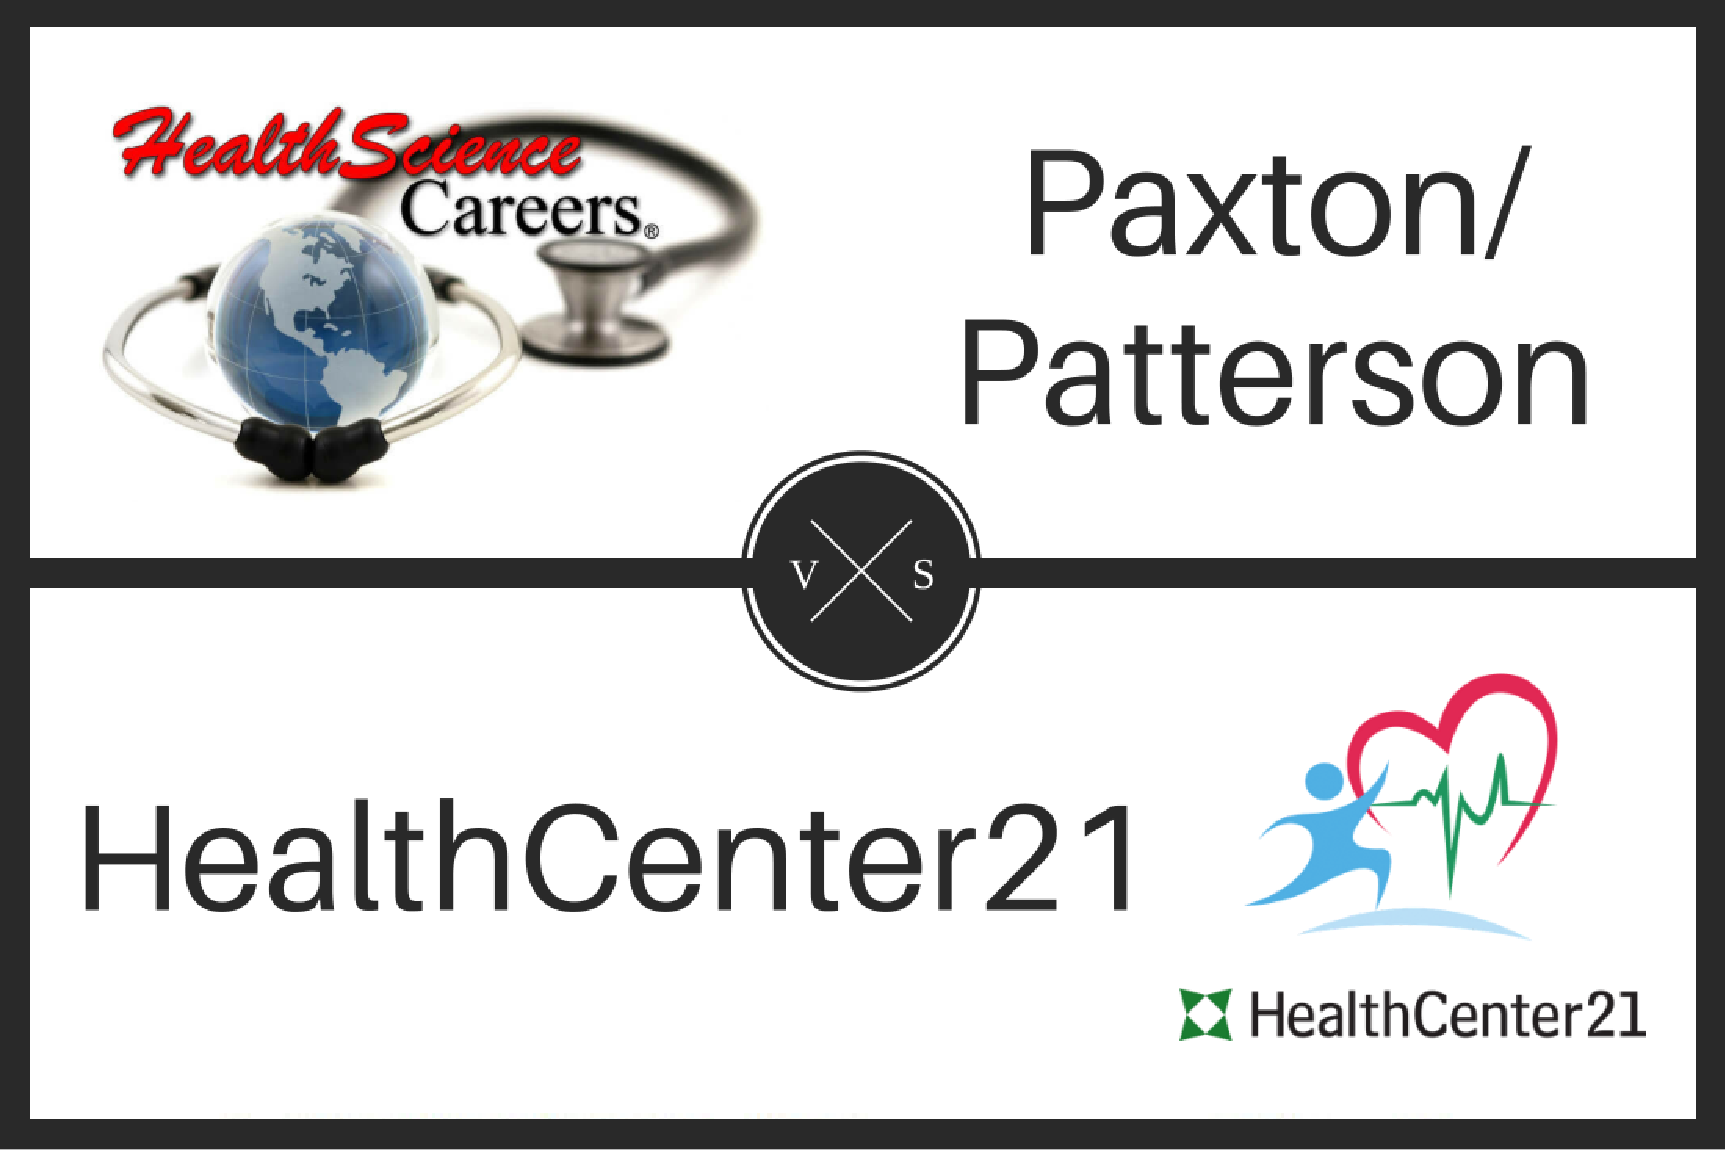 Paxton Patterson vs. HealthCenter21: Which Health Science Curriculum Should You Choose?